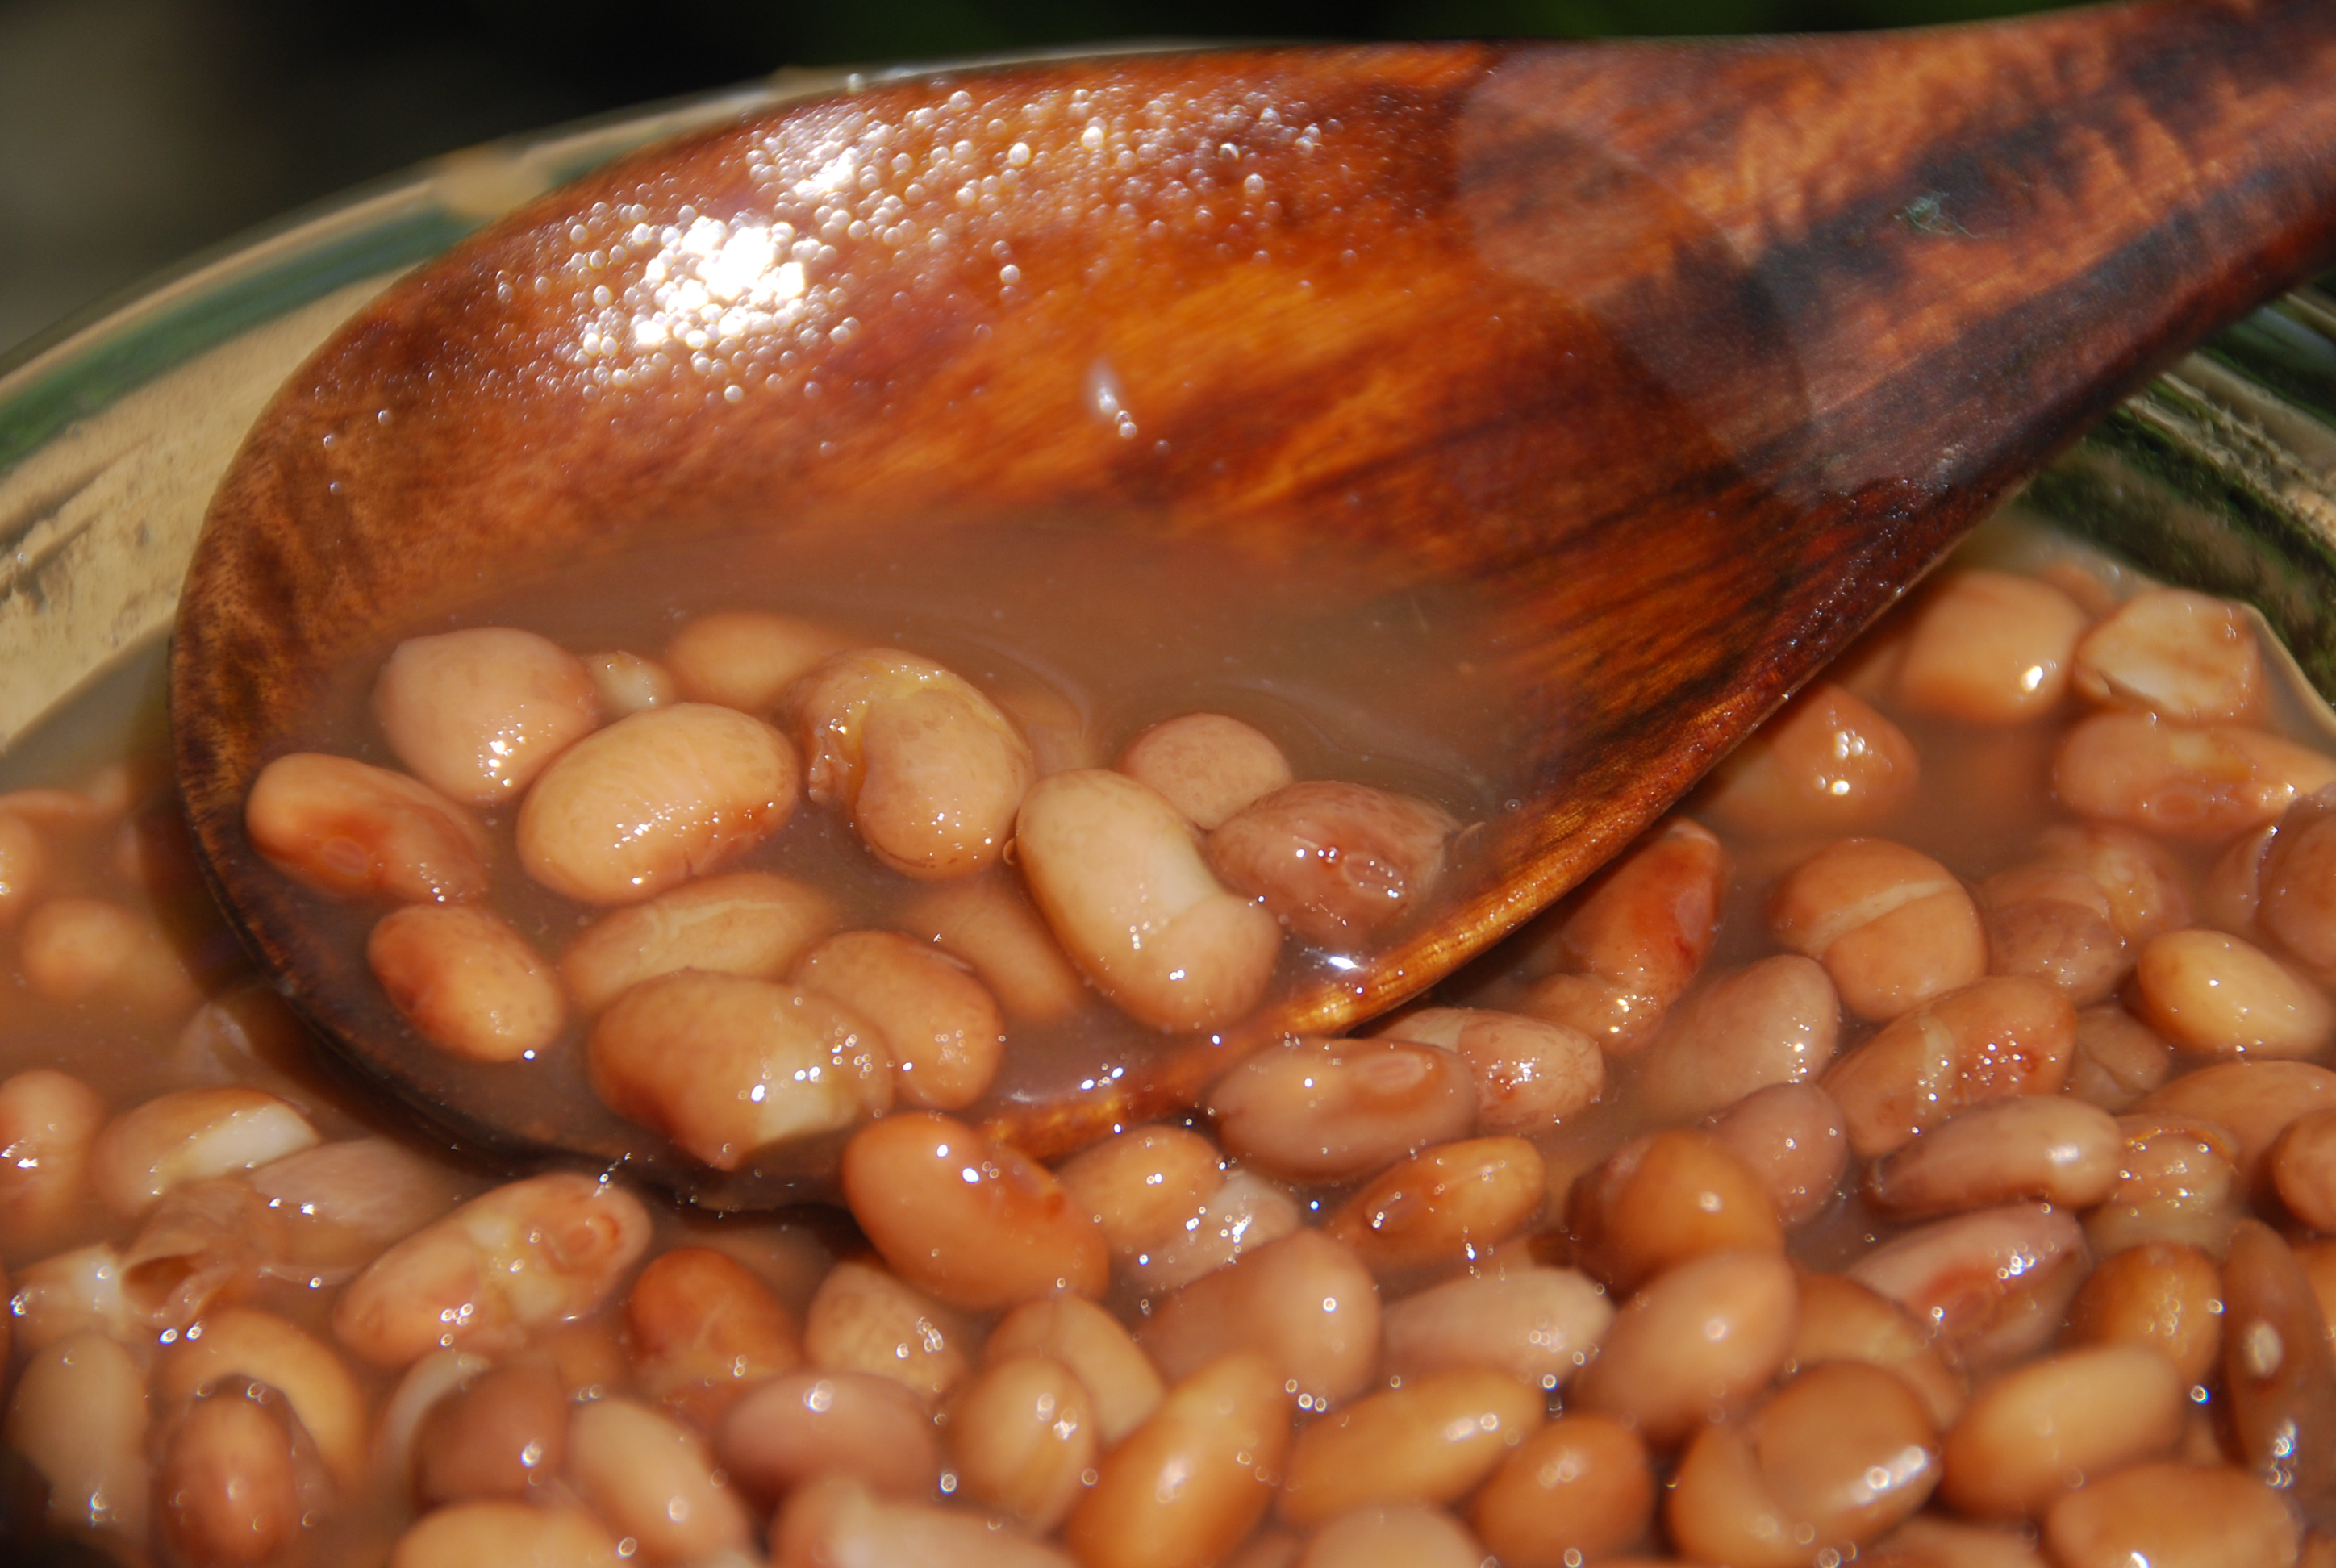 beans from the pot or frijoles de olla